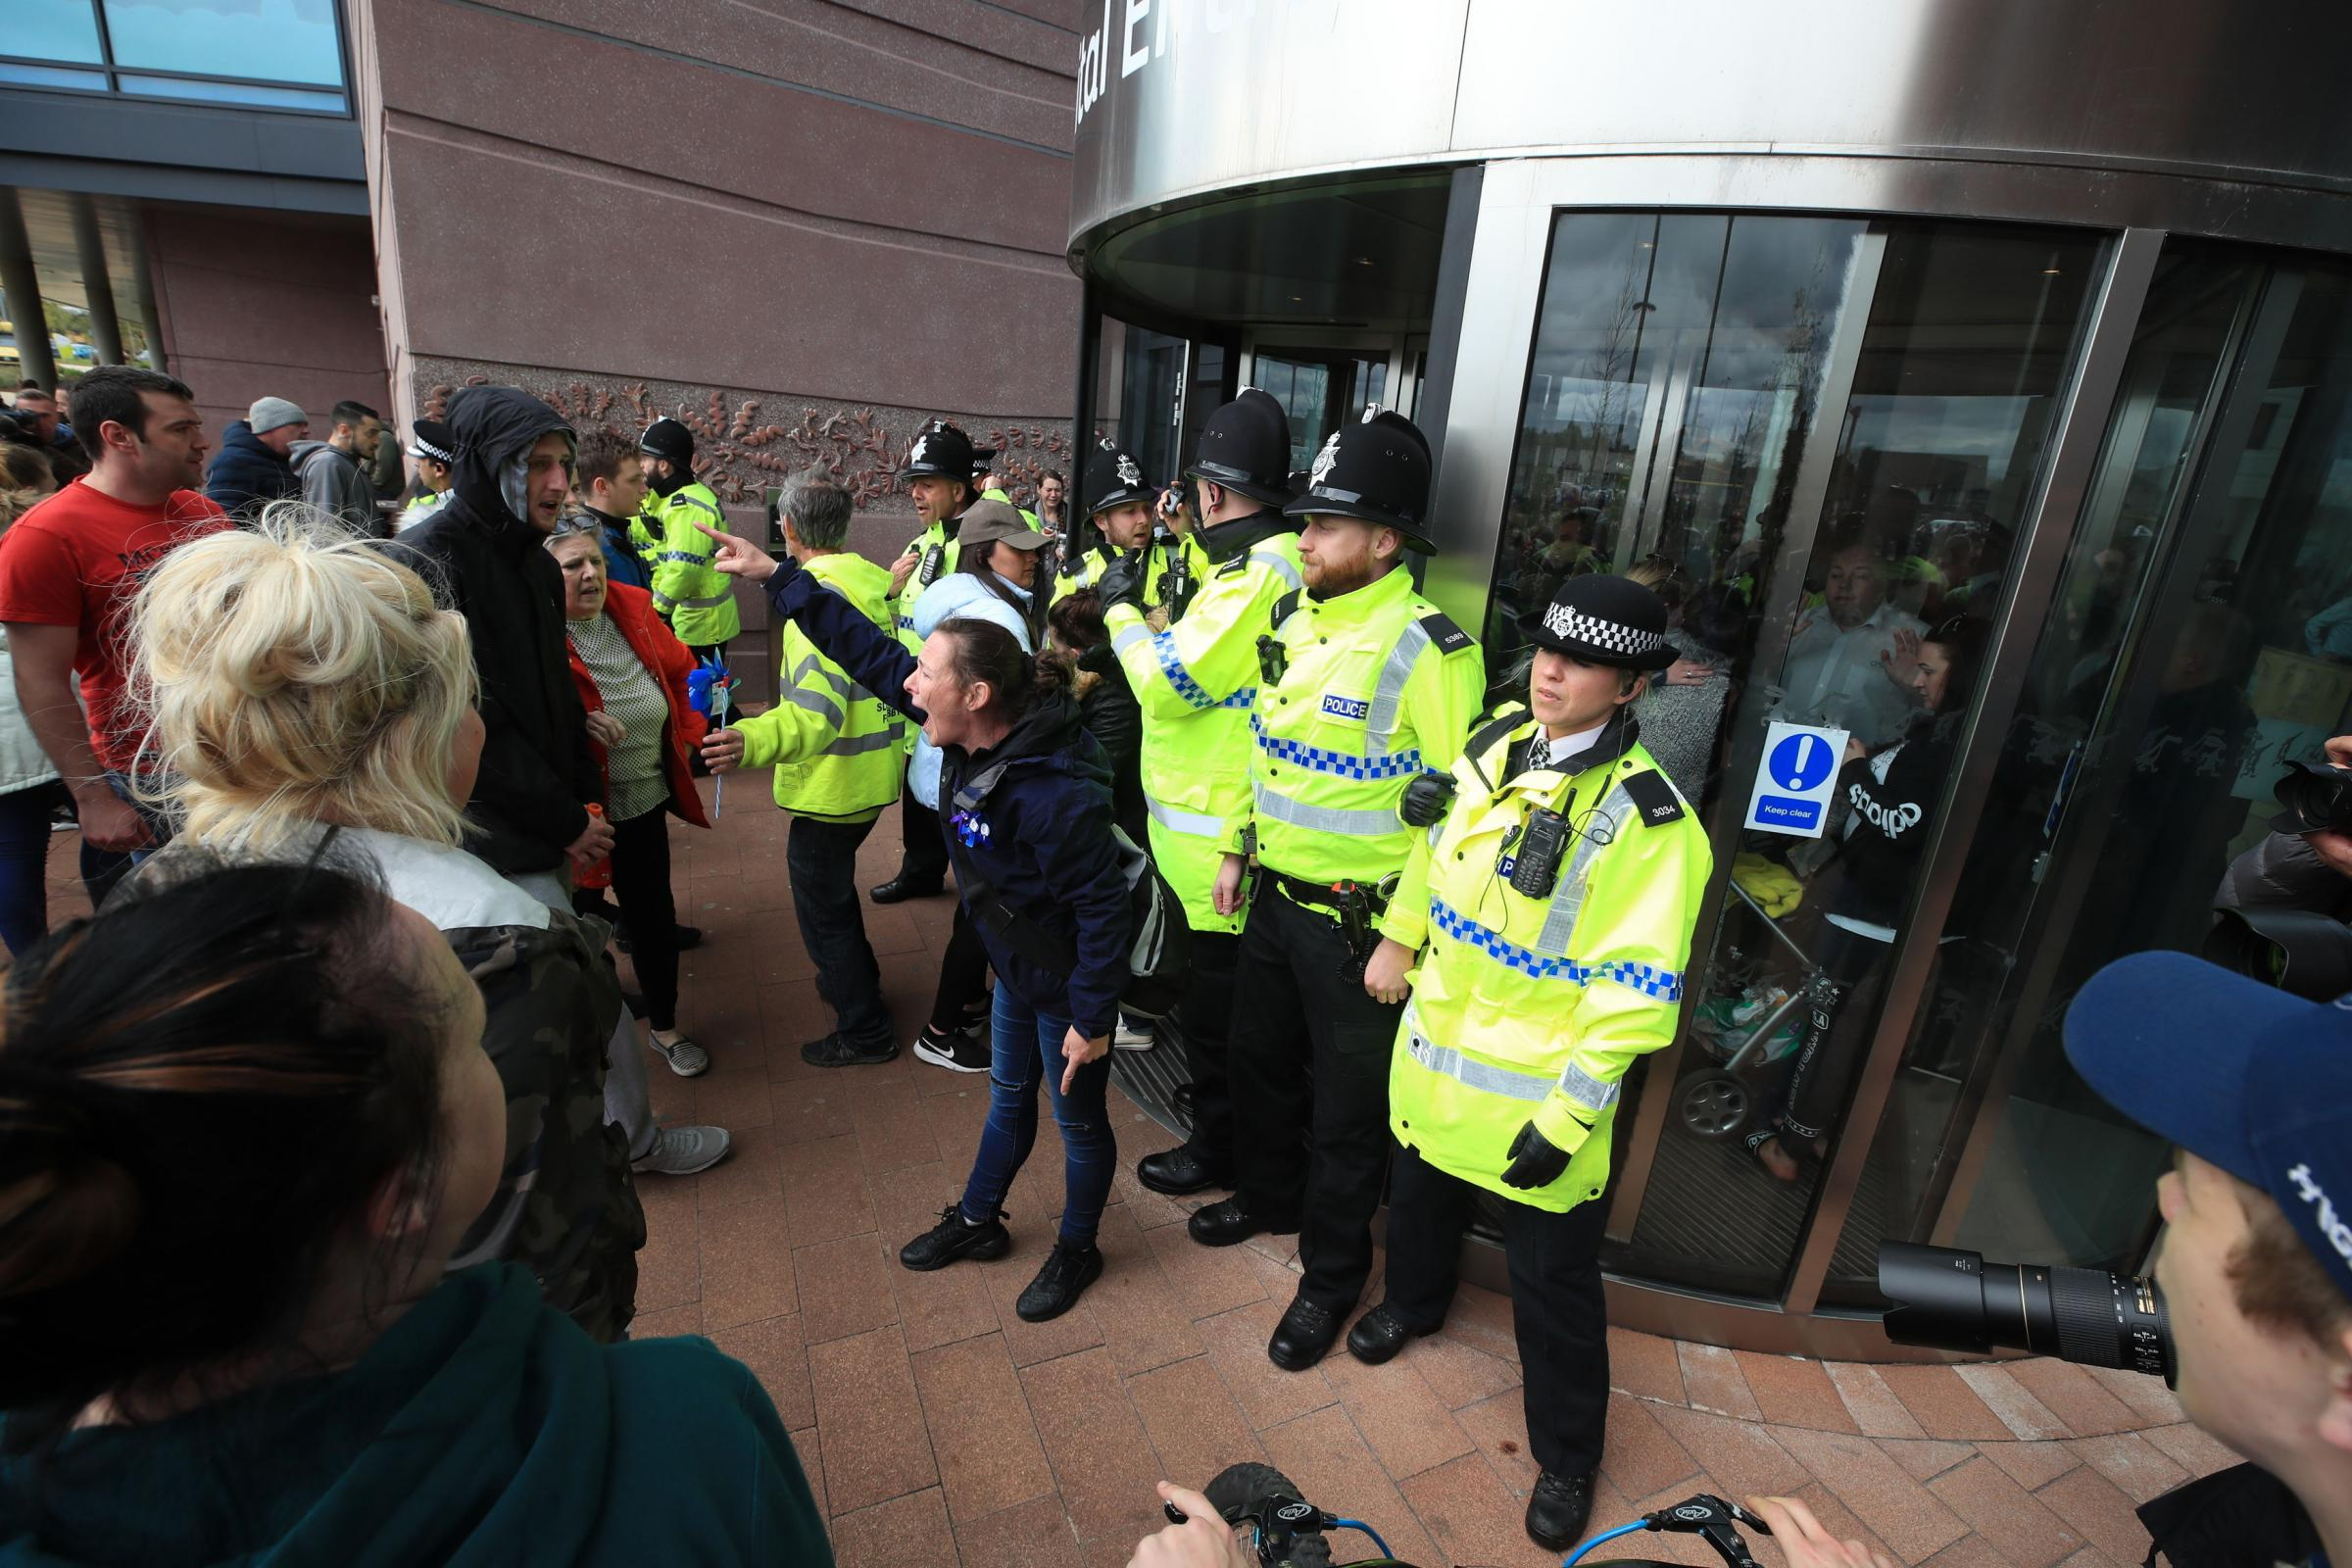 Police block protesters from the entrance to Alder Hey Children's Hospital in Liverpool after the European Court of Human Rights rejected an appeal against the decision to end life-support for Alfie Evans. PRESS ASSOCIATION Photo. Picture date: Monday